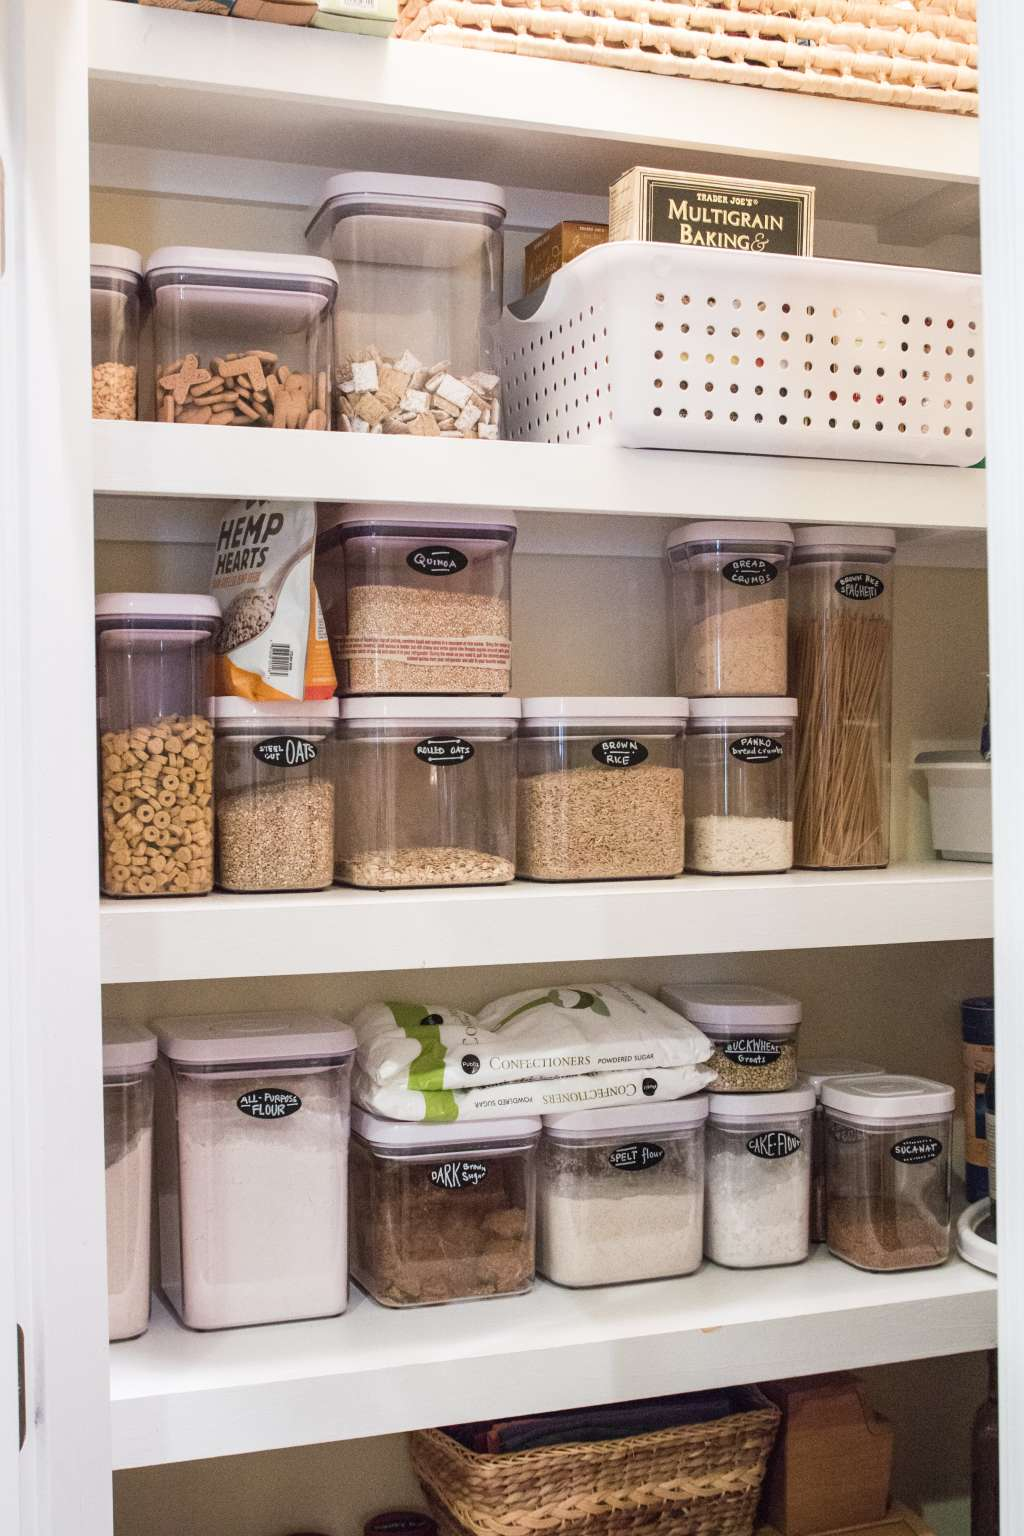 How To Use Labels to Help KonMari Your Home